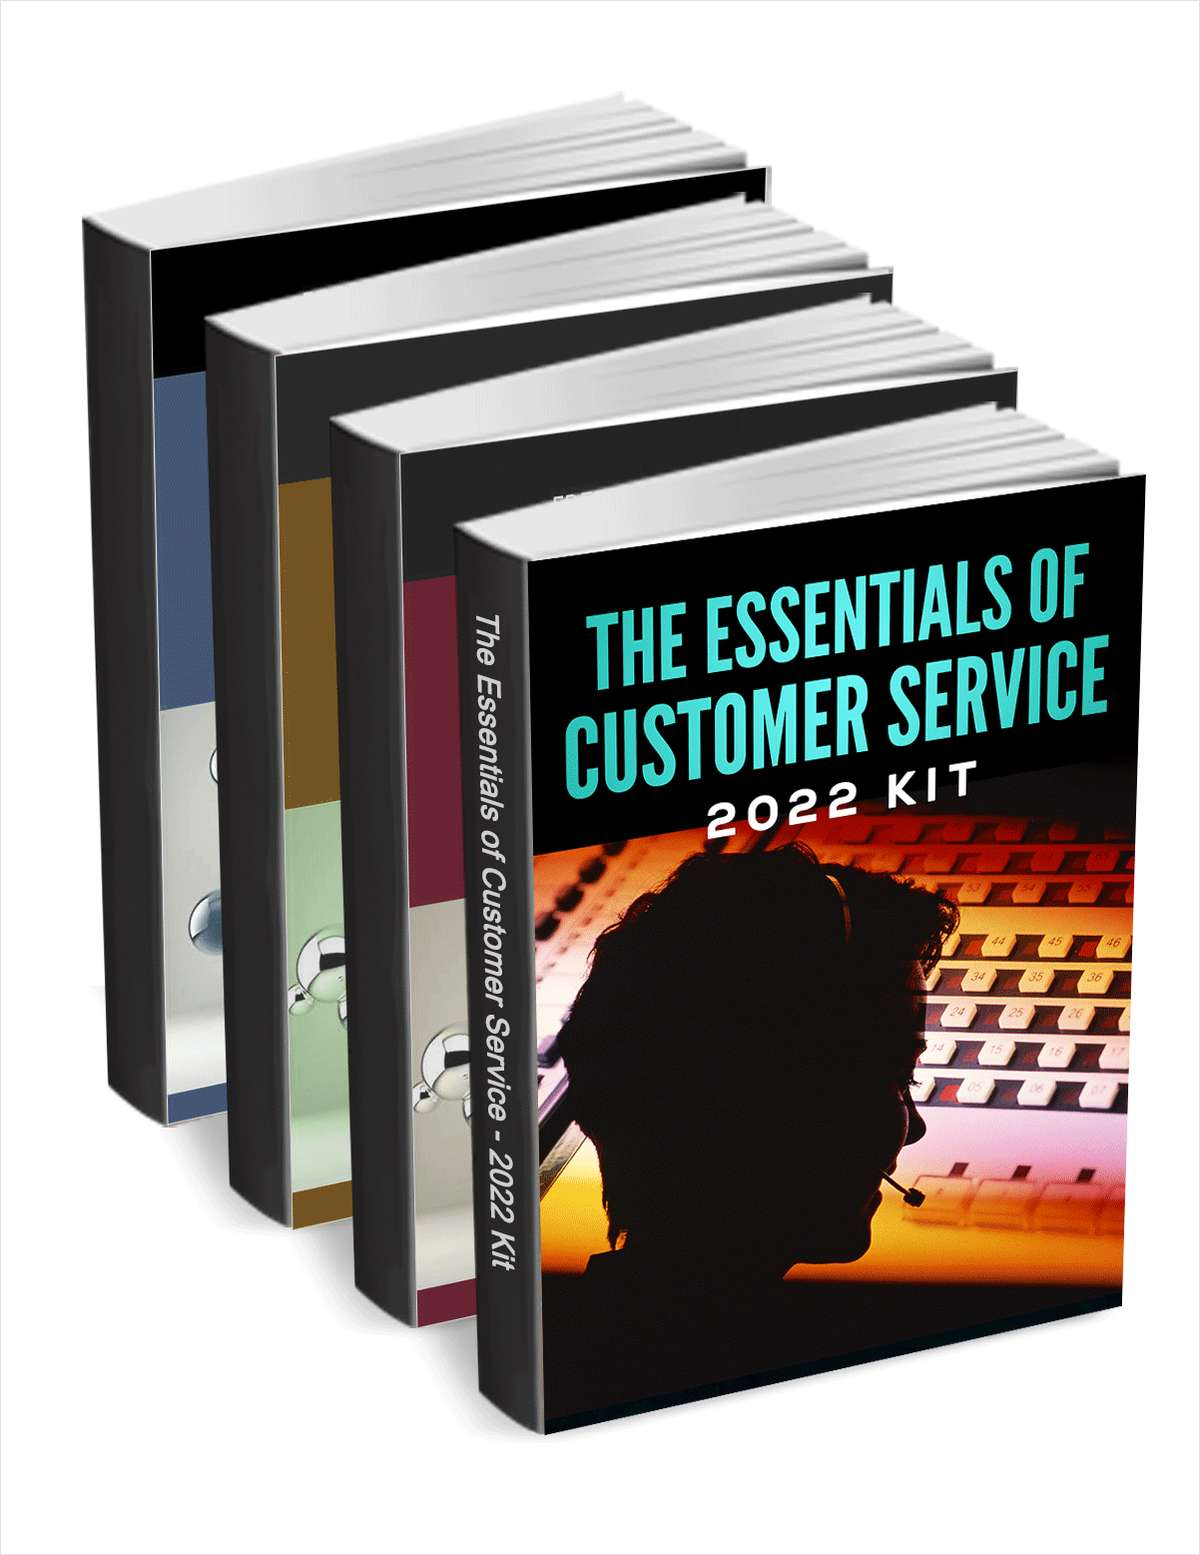 The Essentials of Customer Service - 2021 Kit